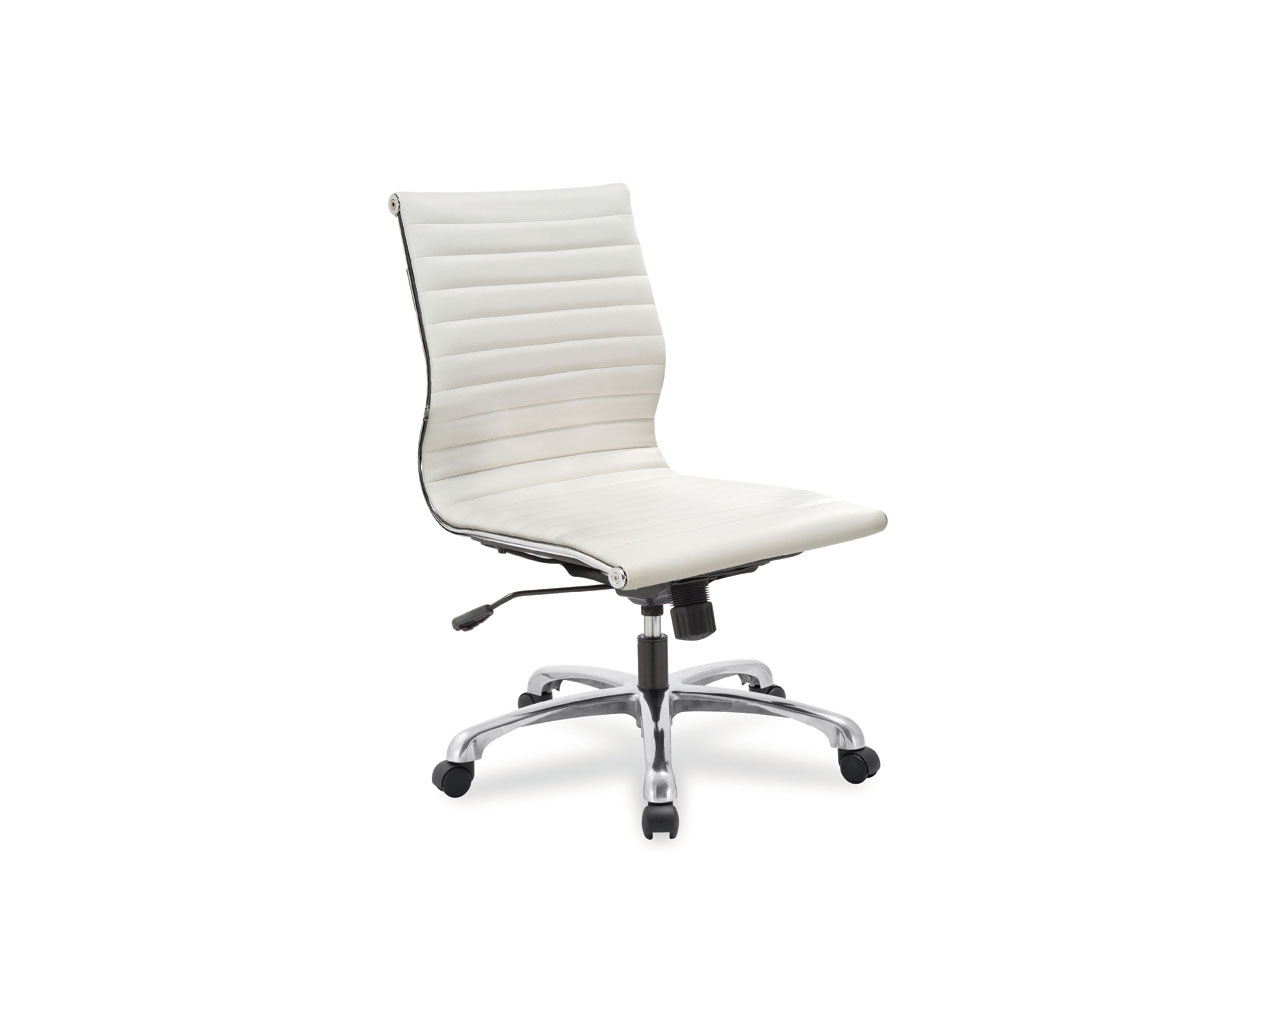 leather office chairs without arms swing chair verandah nova mid back